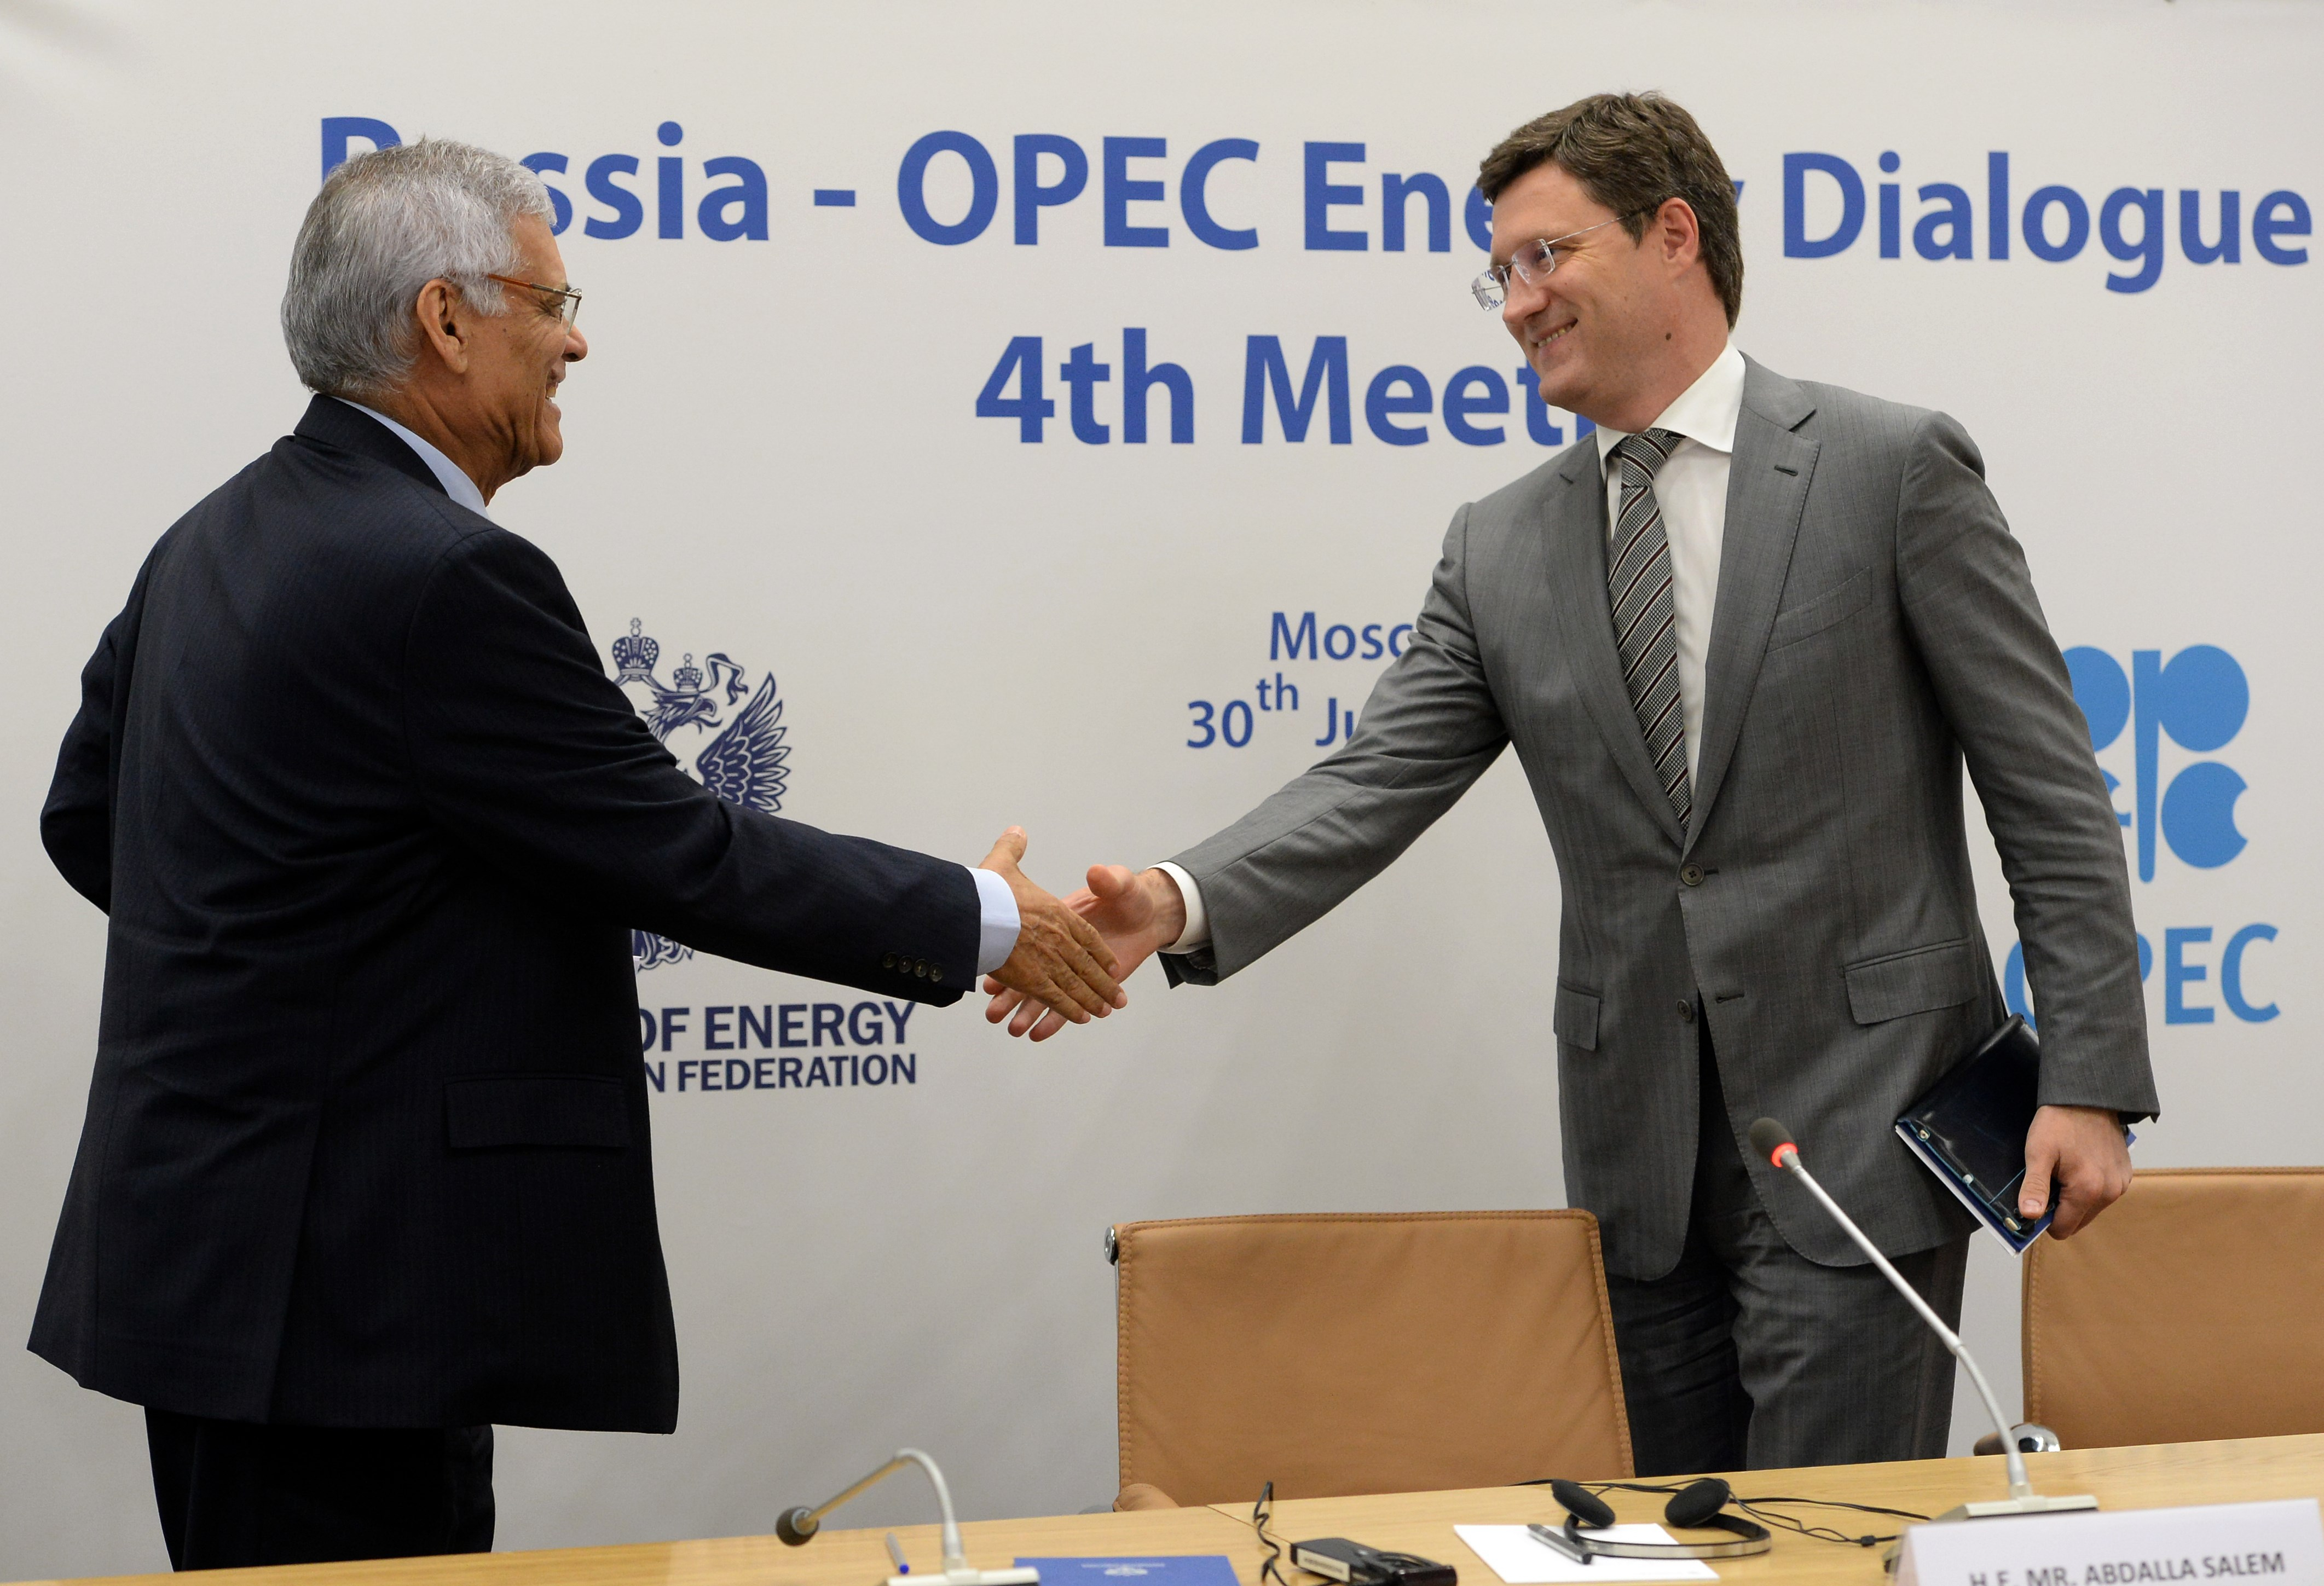 OPEC Secretary-General Abdalla Salem El-Badri and Russia's Energy Minister Alexander Novak shake hands during a press-conference after Russia-OPEC energy dialogue meeting in Moscow on July 30, 2015.